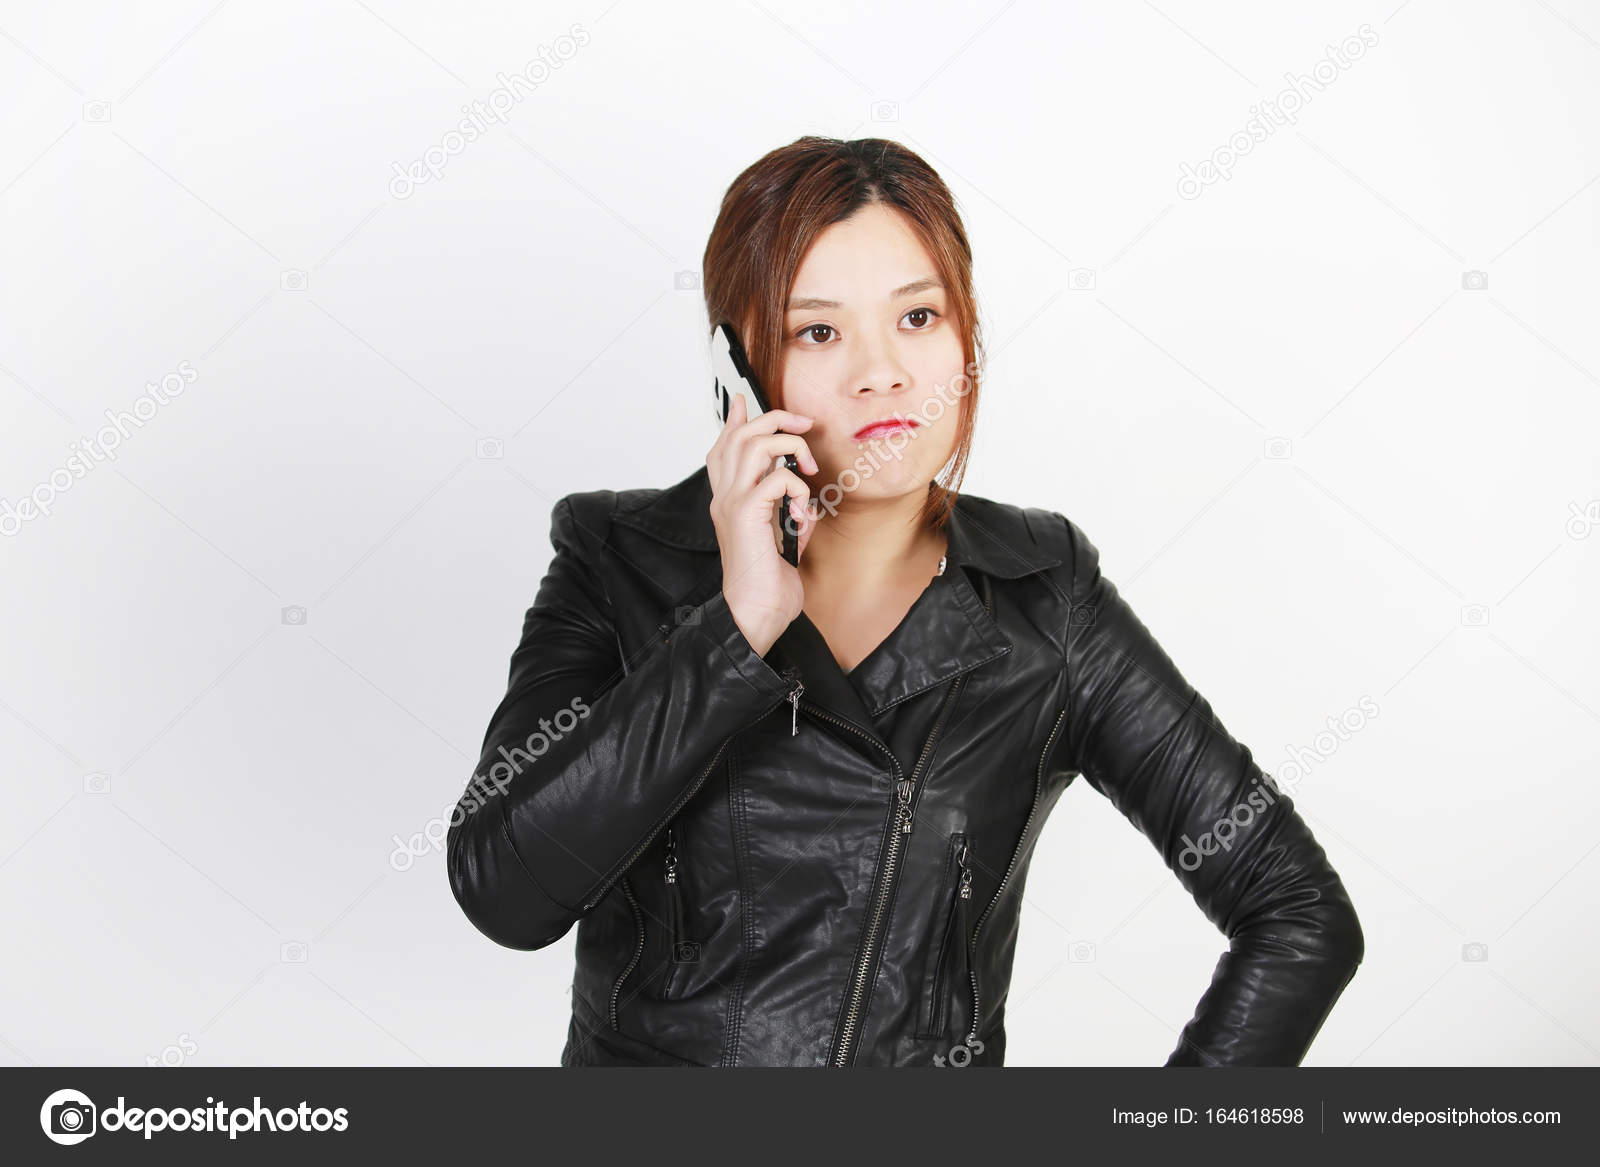 Suggest Callgirls in leather pictuer amusing opinion